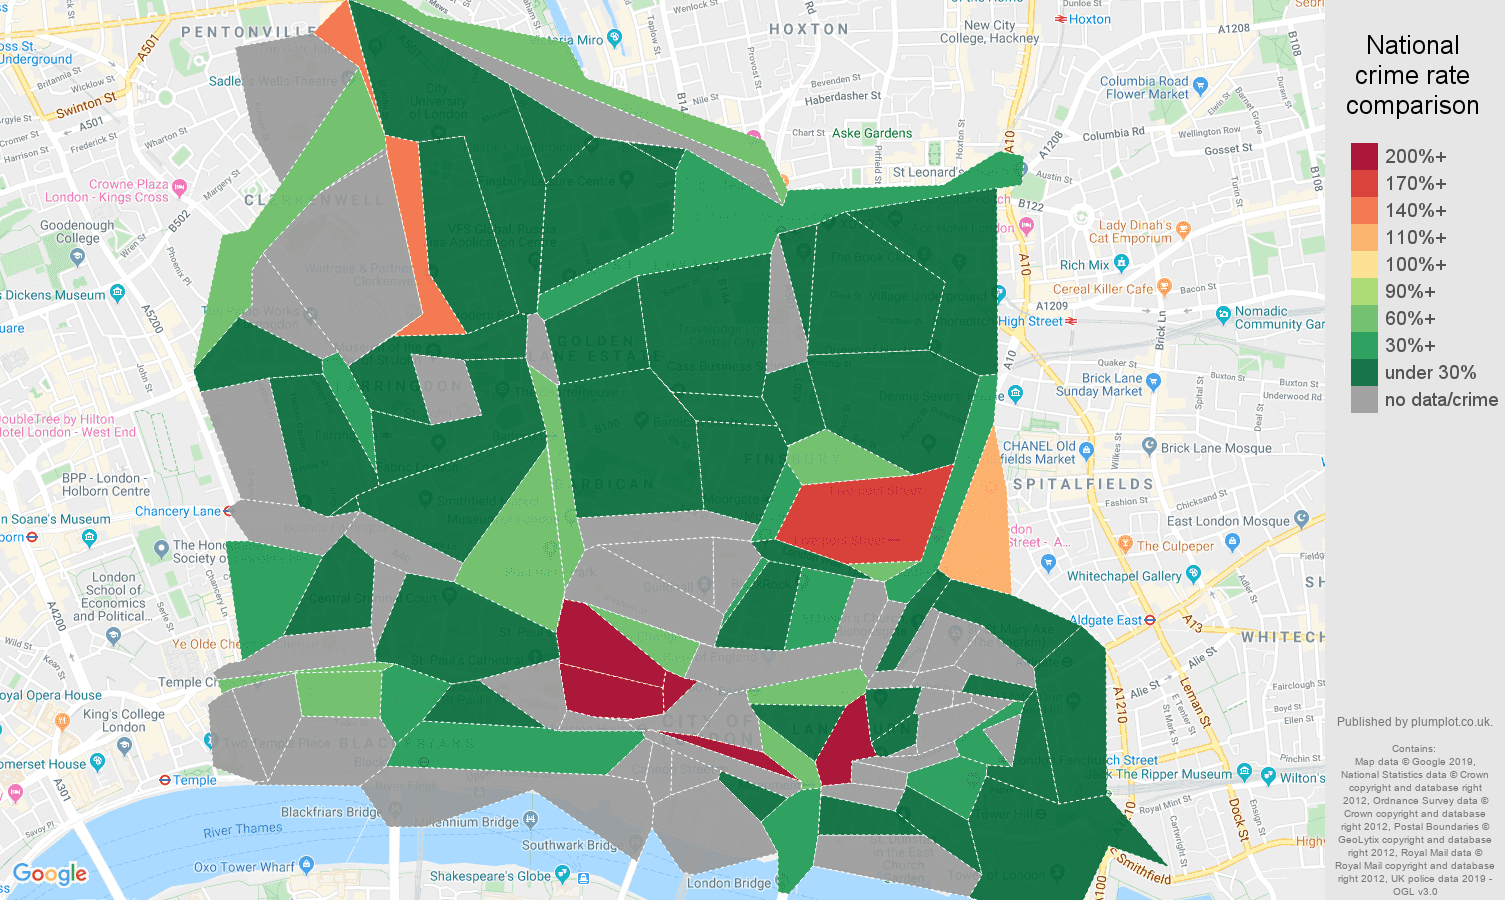 East Central London shoplifting crime rate comparison map